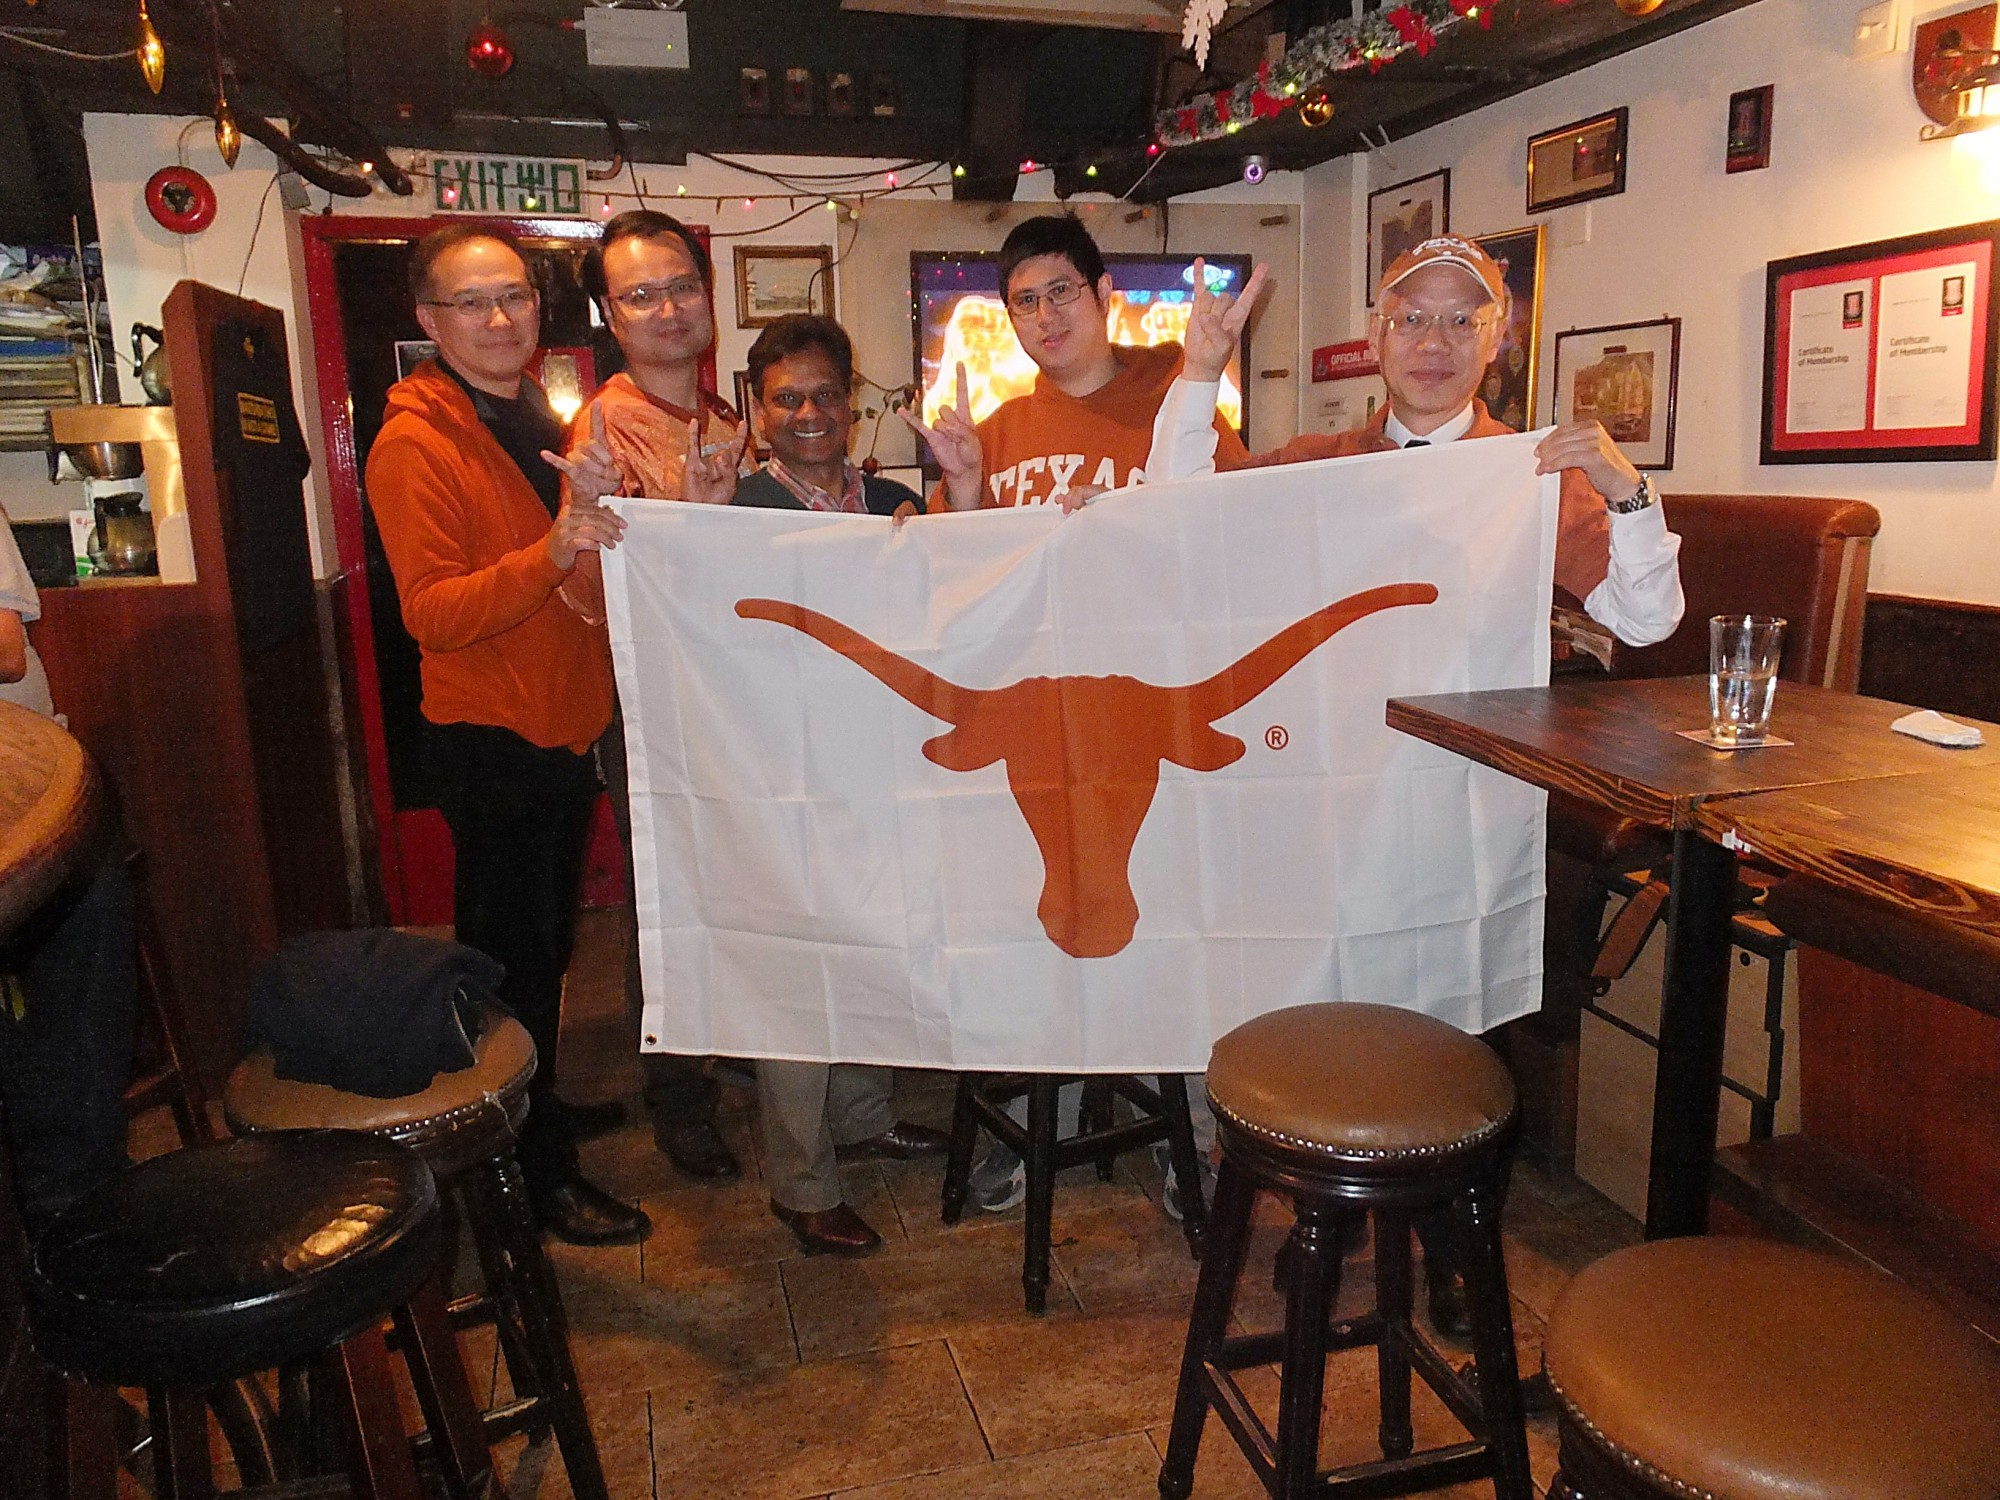 Texas in Texas Bowl Live Watching Party